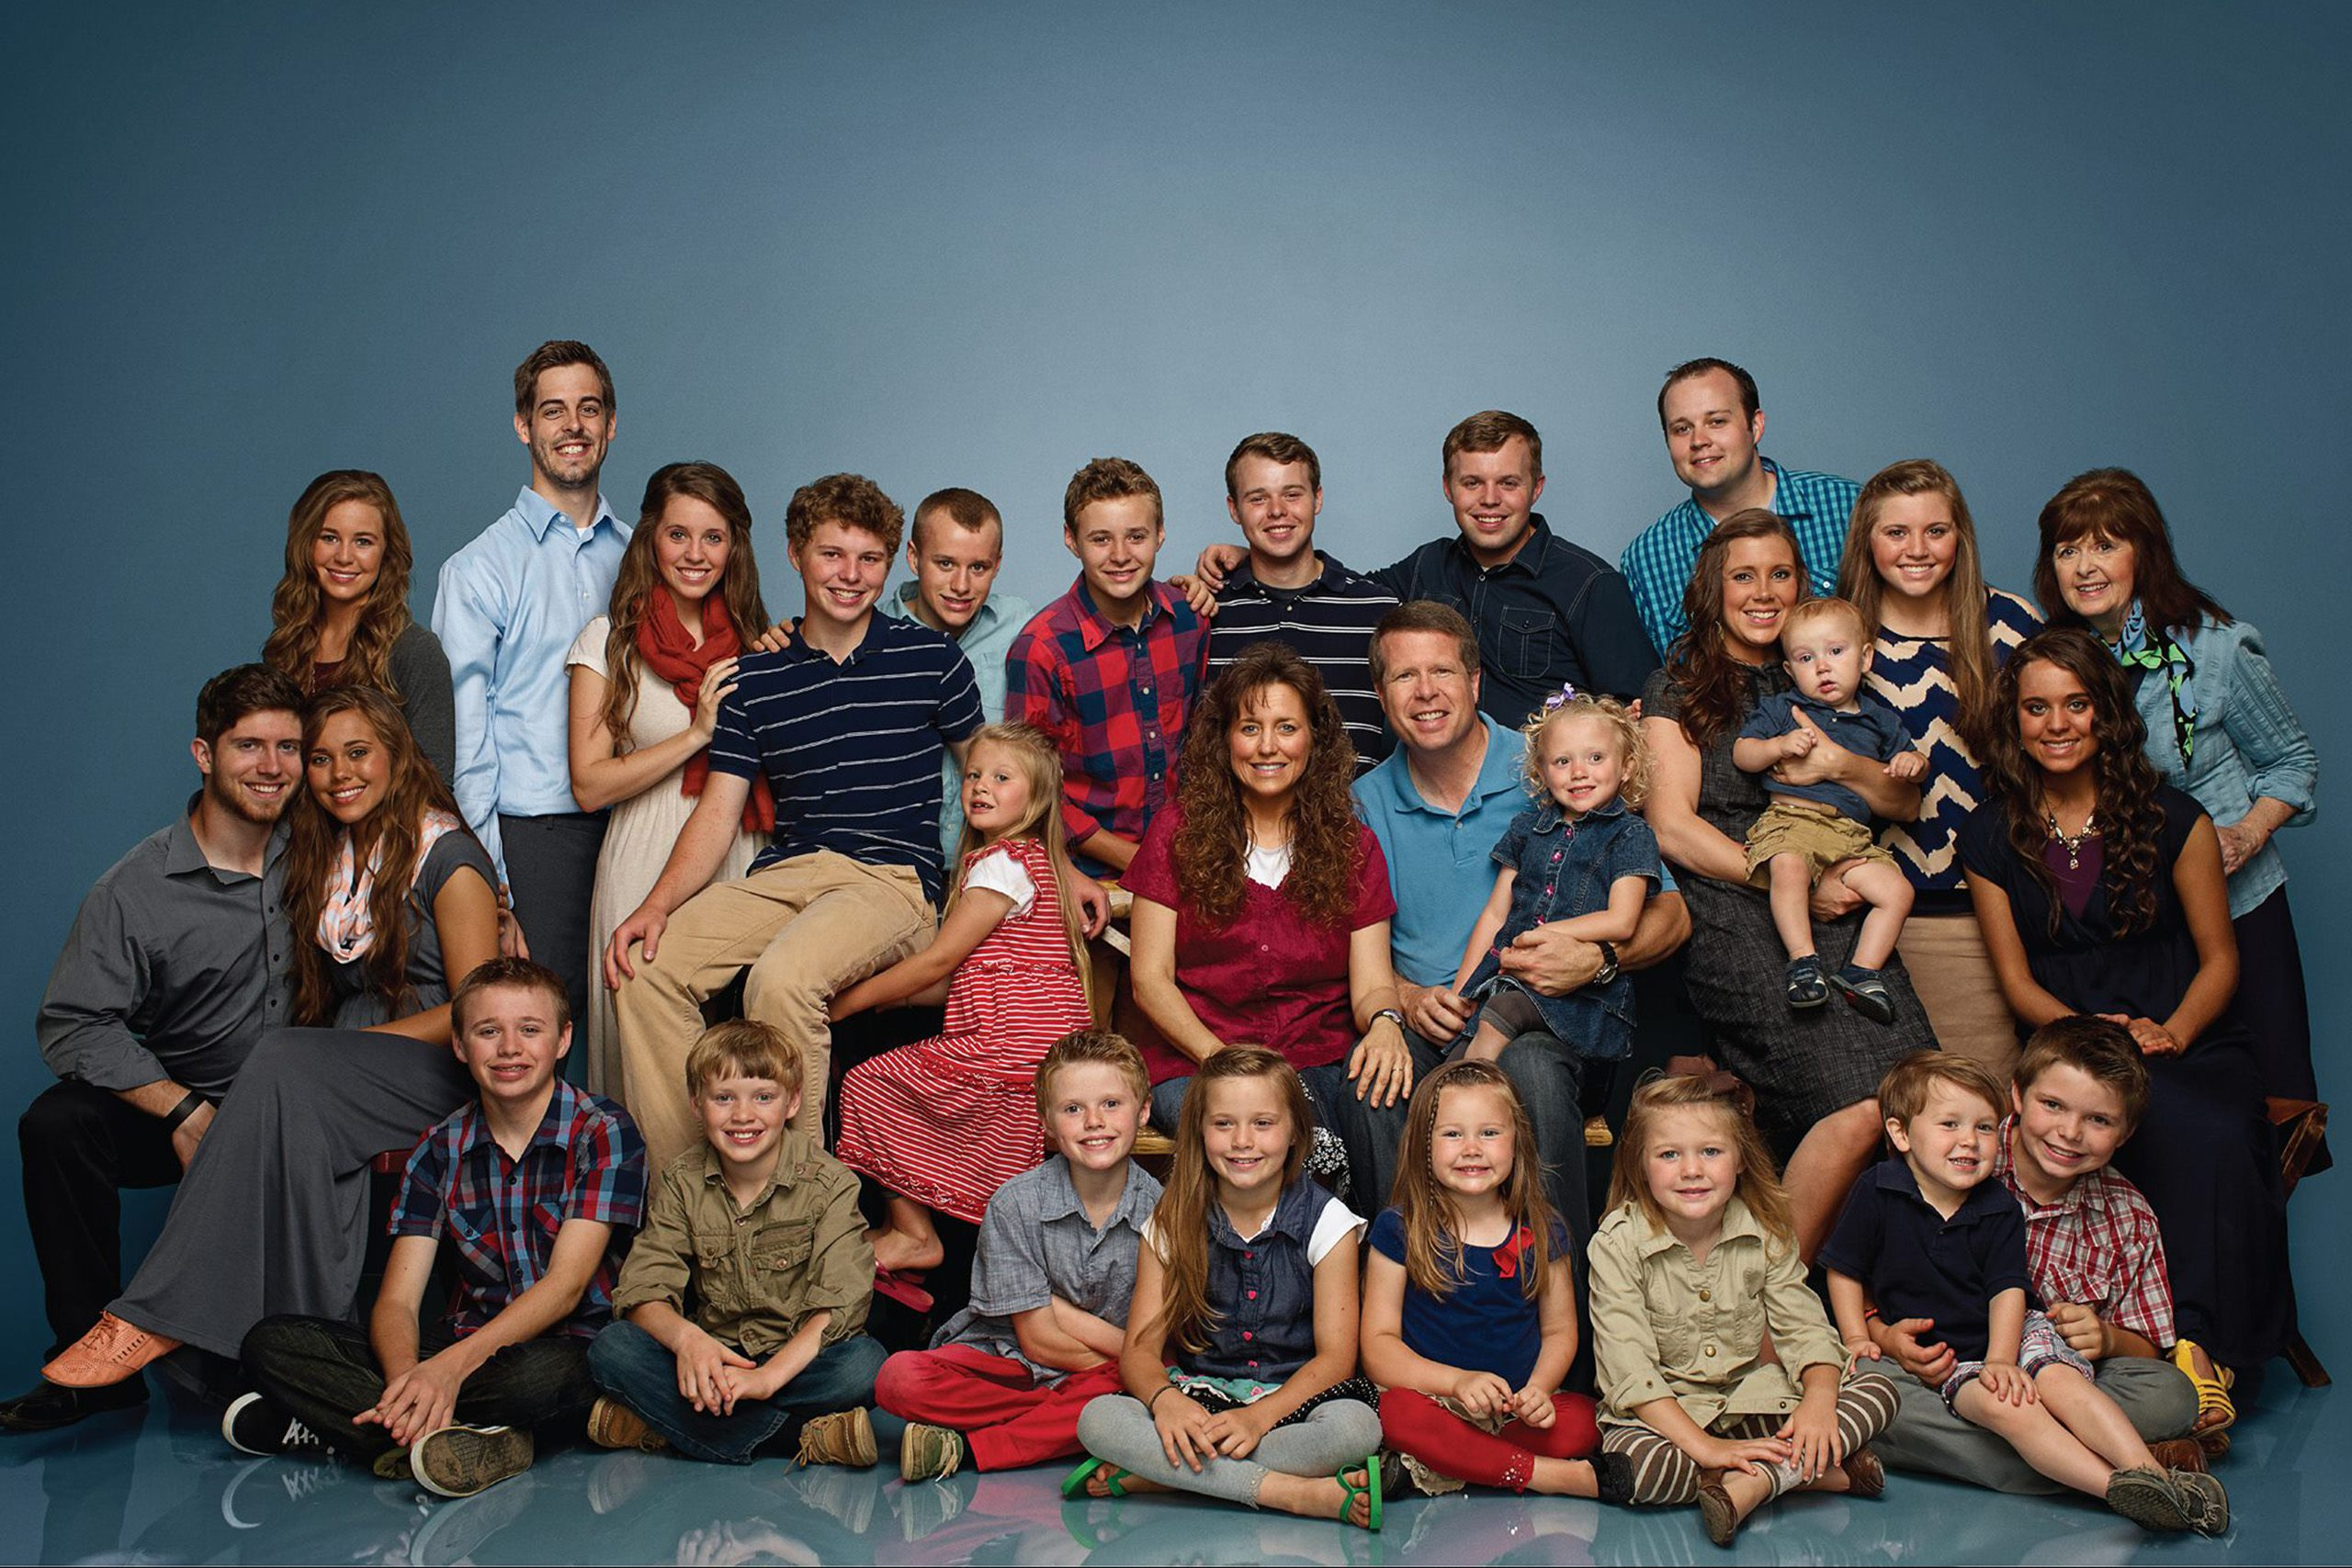 The Duggar Family poses in front of a blue background